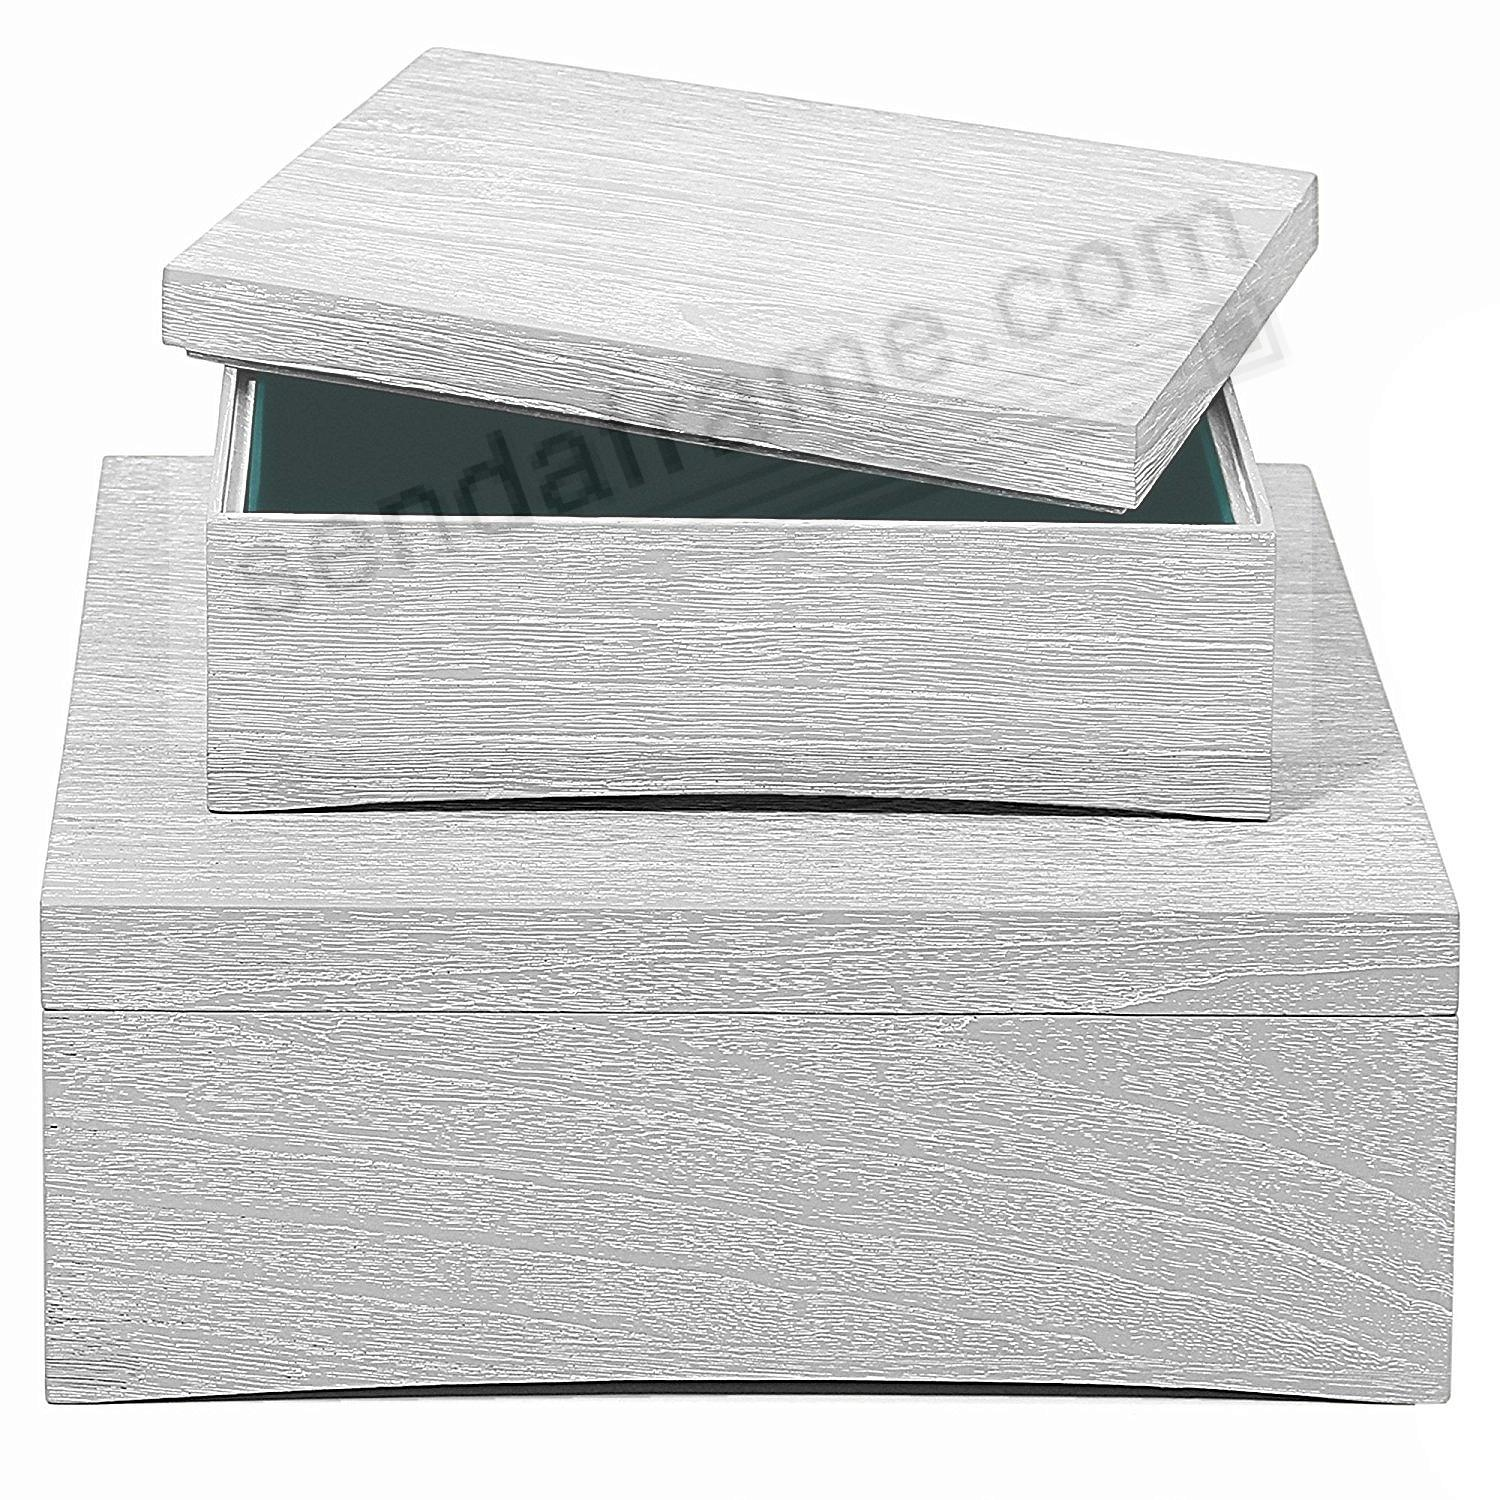 WOOD DRIFT STORAGE BOXES 14x14 LT GRAY by Swing Design® (set of 2)